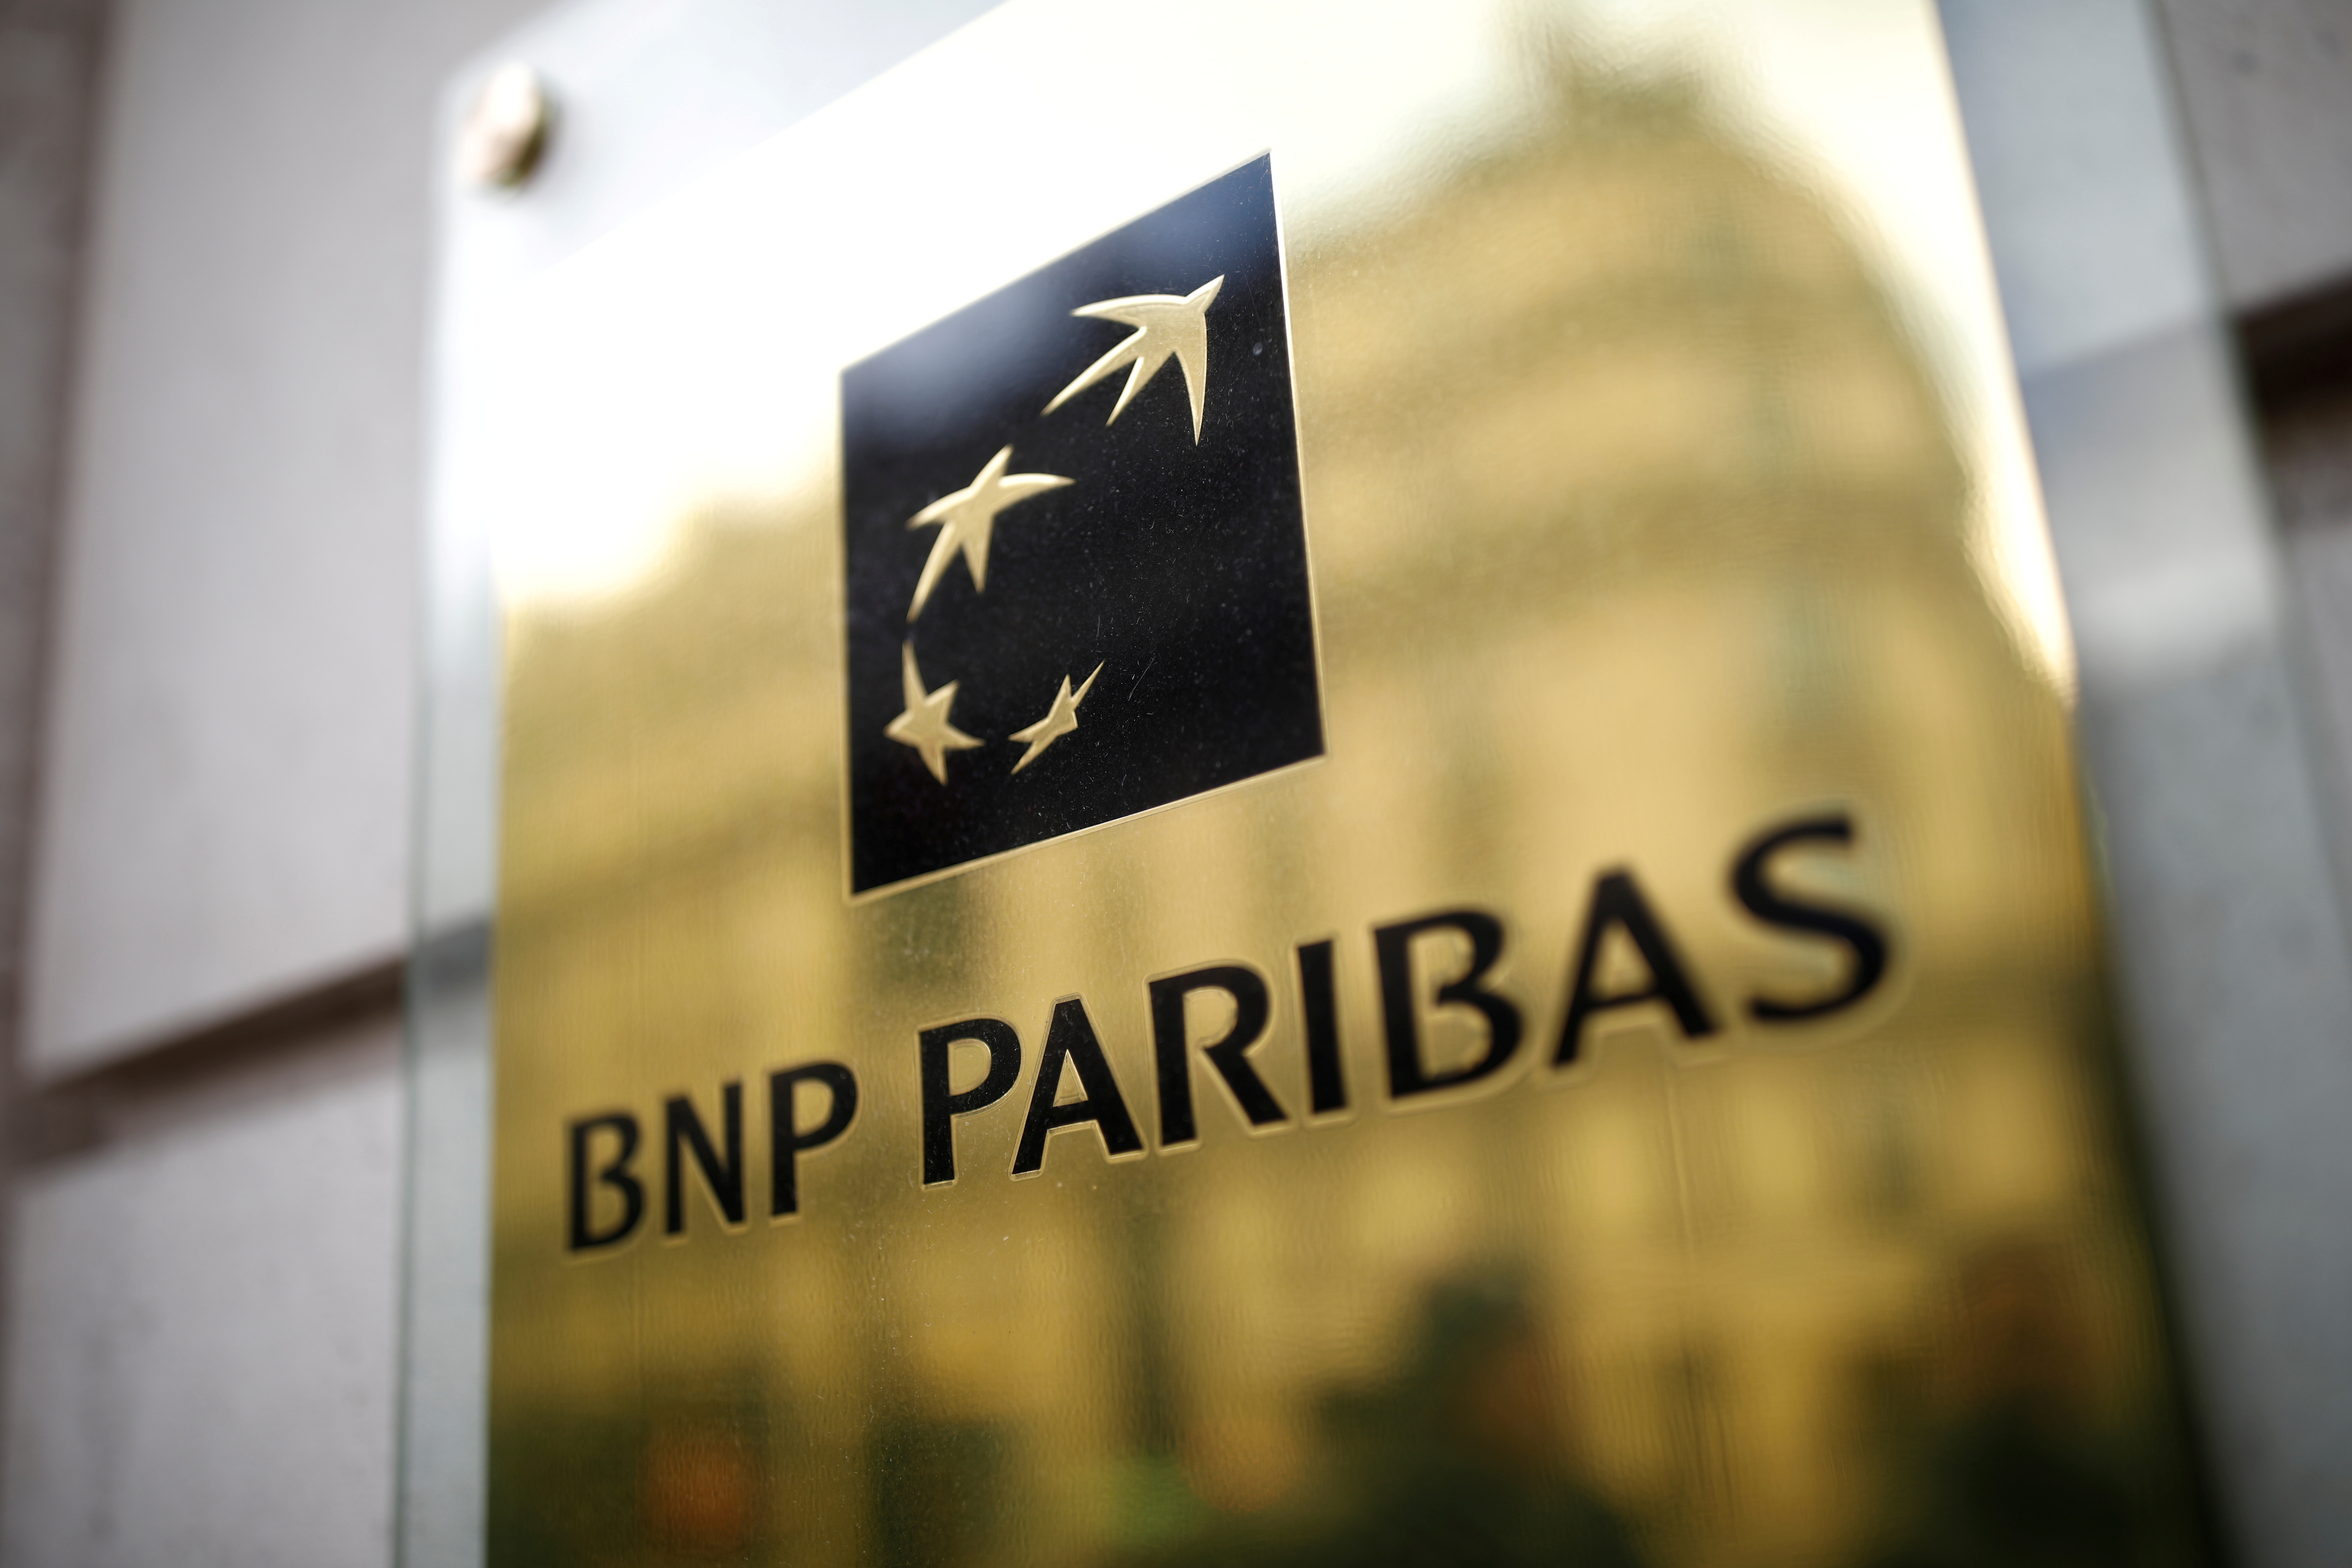 The BNP Paribas logo is seen at a branch in Paris, France, February 4, 2020. REUTERS/Benoit Tessier/File Photo